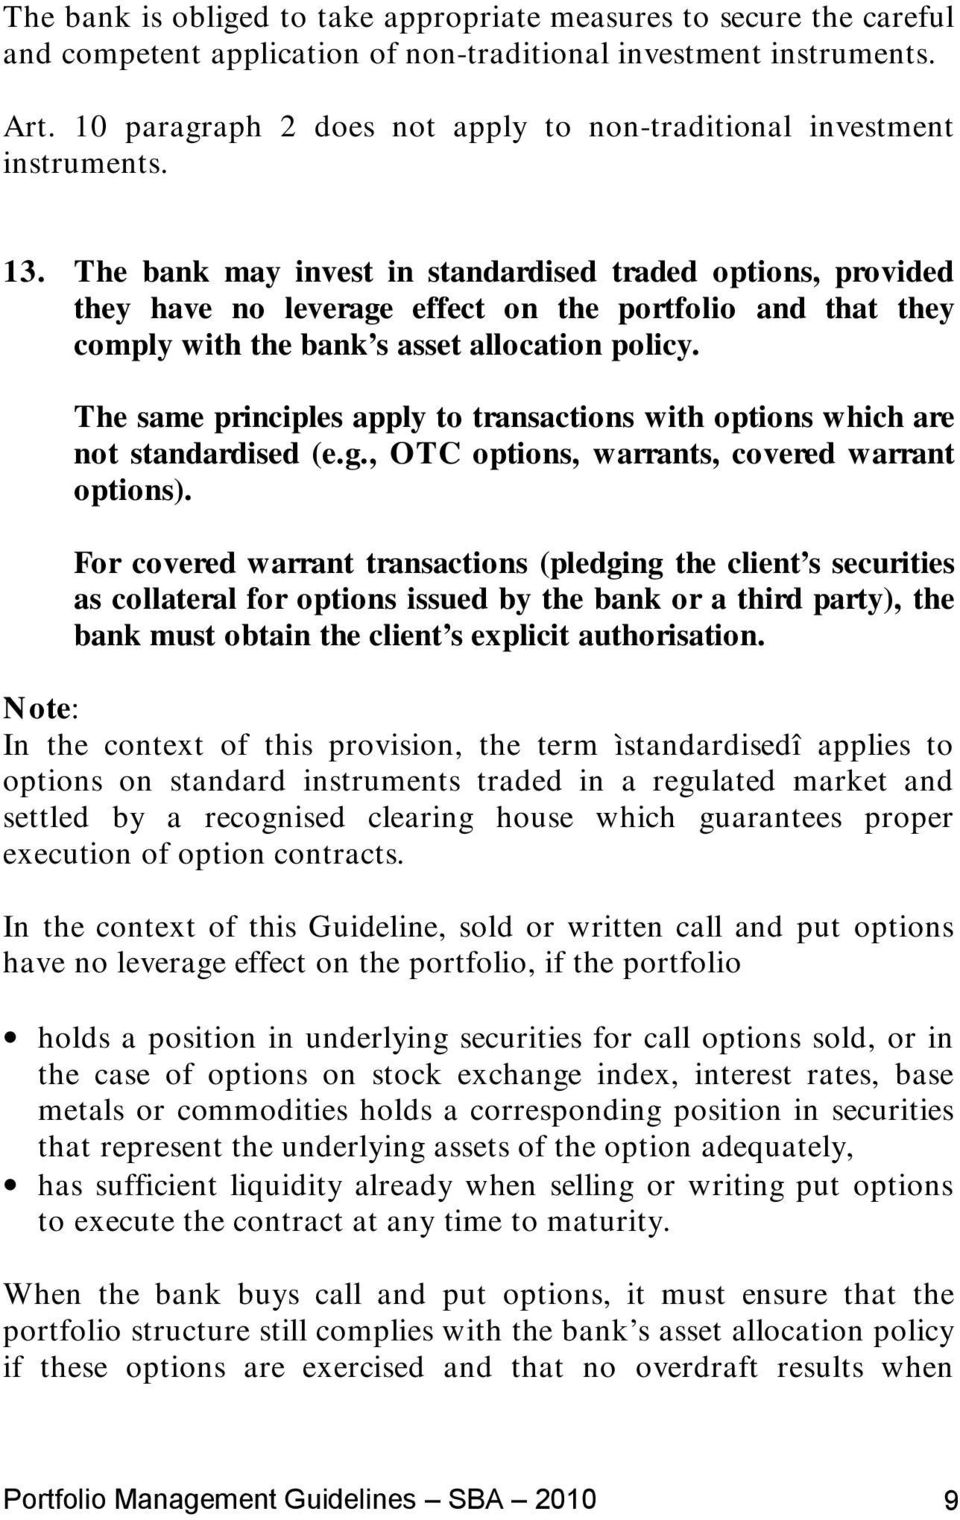 The bank may invest in standardised traded options, provided they have no leverage effect on the portfolio and that they comply with the bank s asset allocation policy.